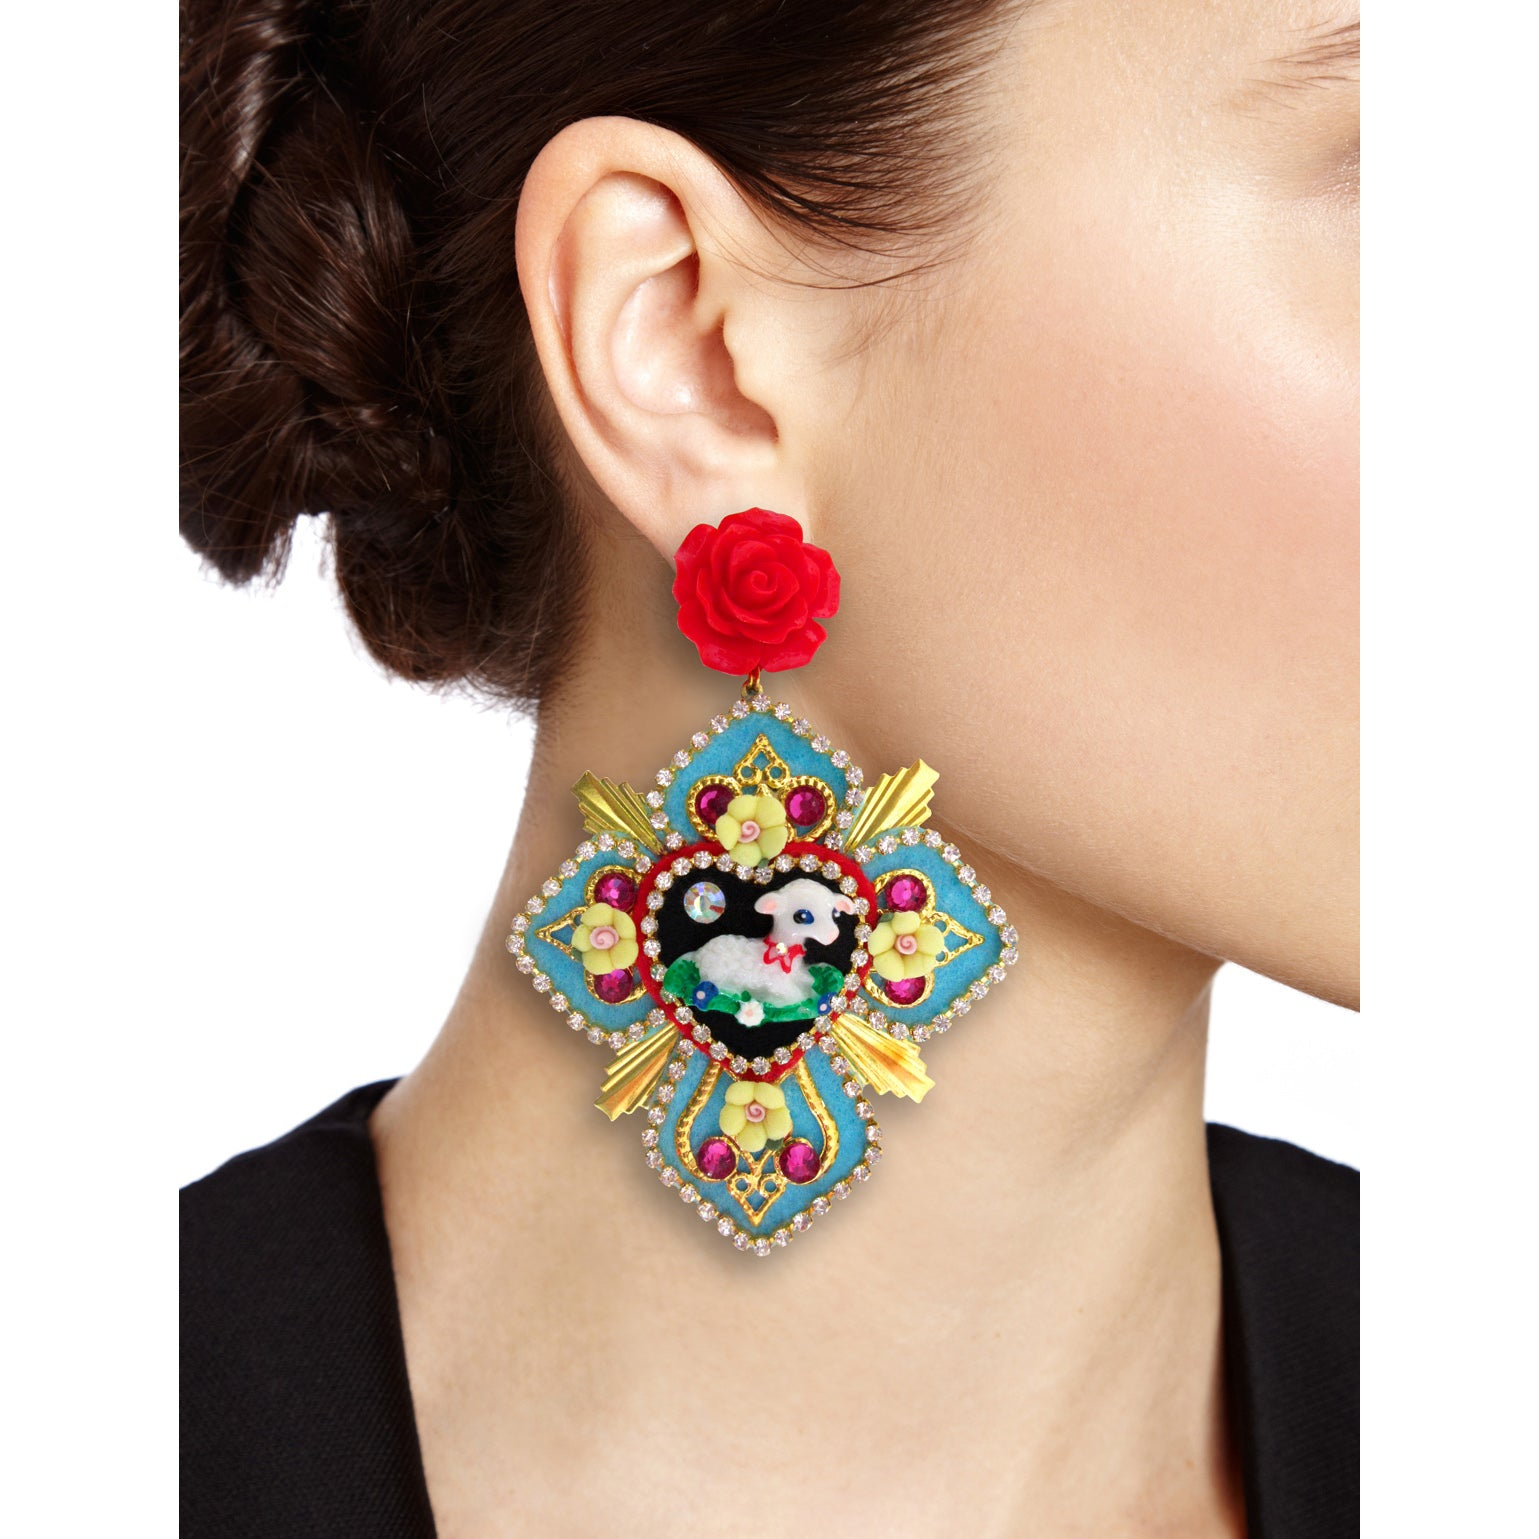 Mouchkine Jewelry couture glamour cross and sheep pendant earrings.